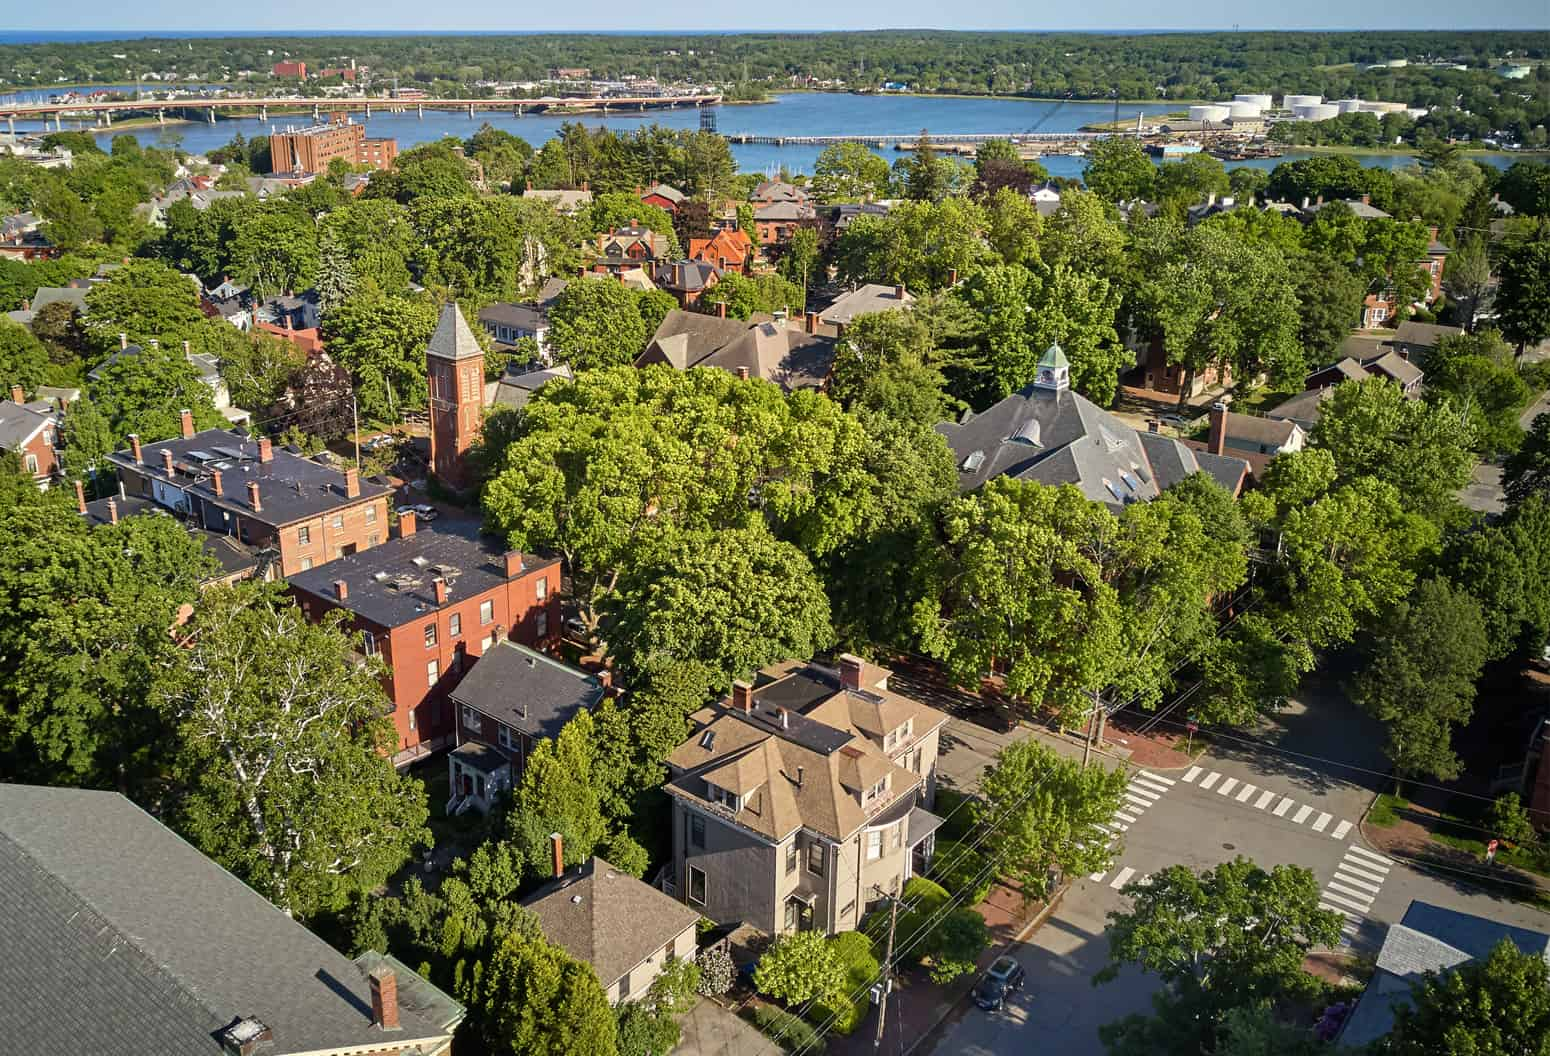 aerial view of Pomegranate Inn and Portland Maine